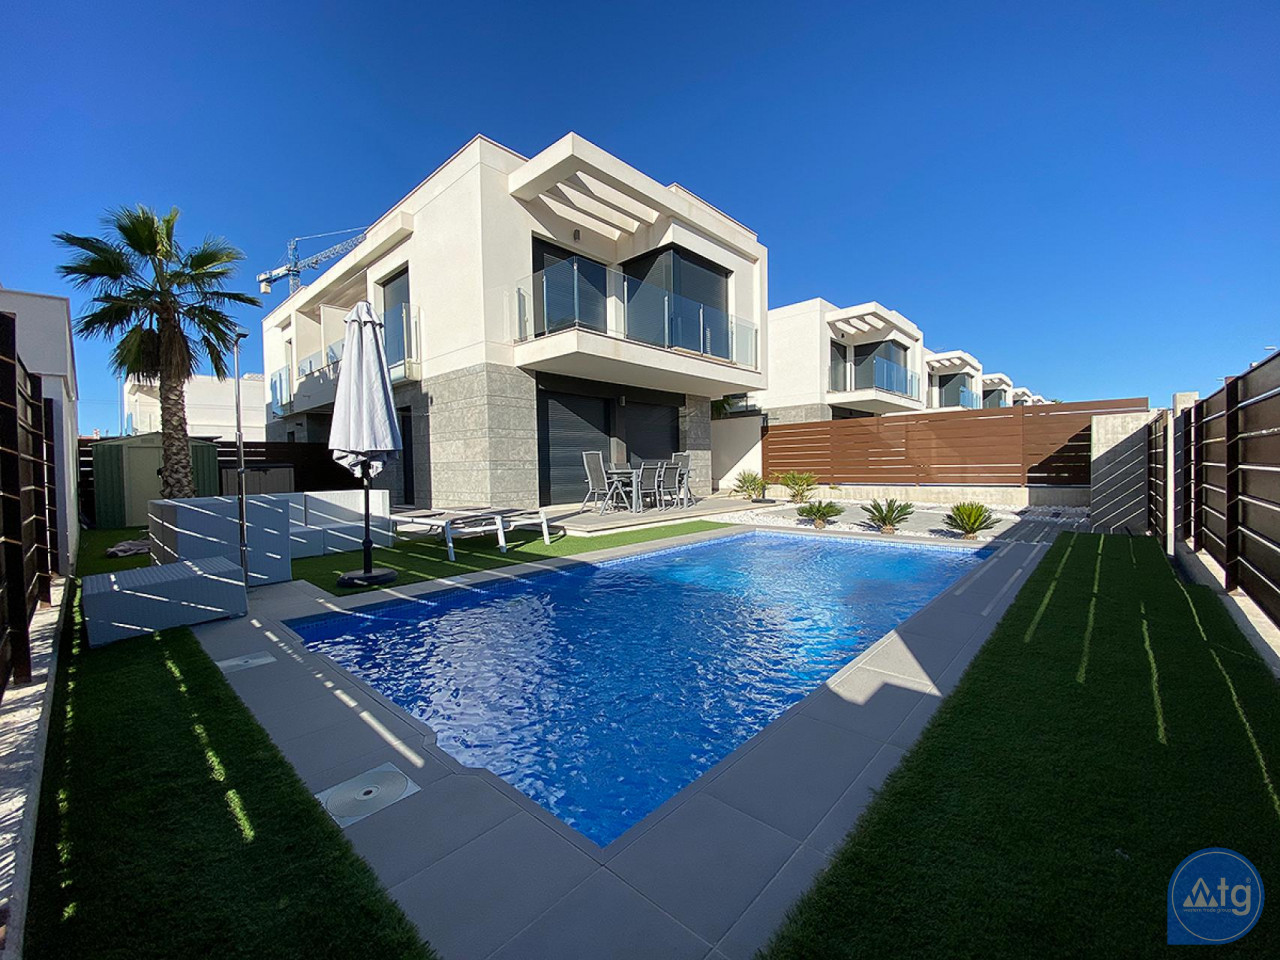 Spain property for sale in Orihuela, Valencia